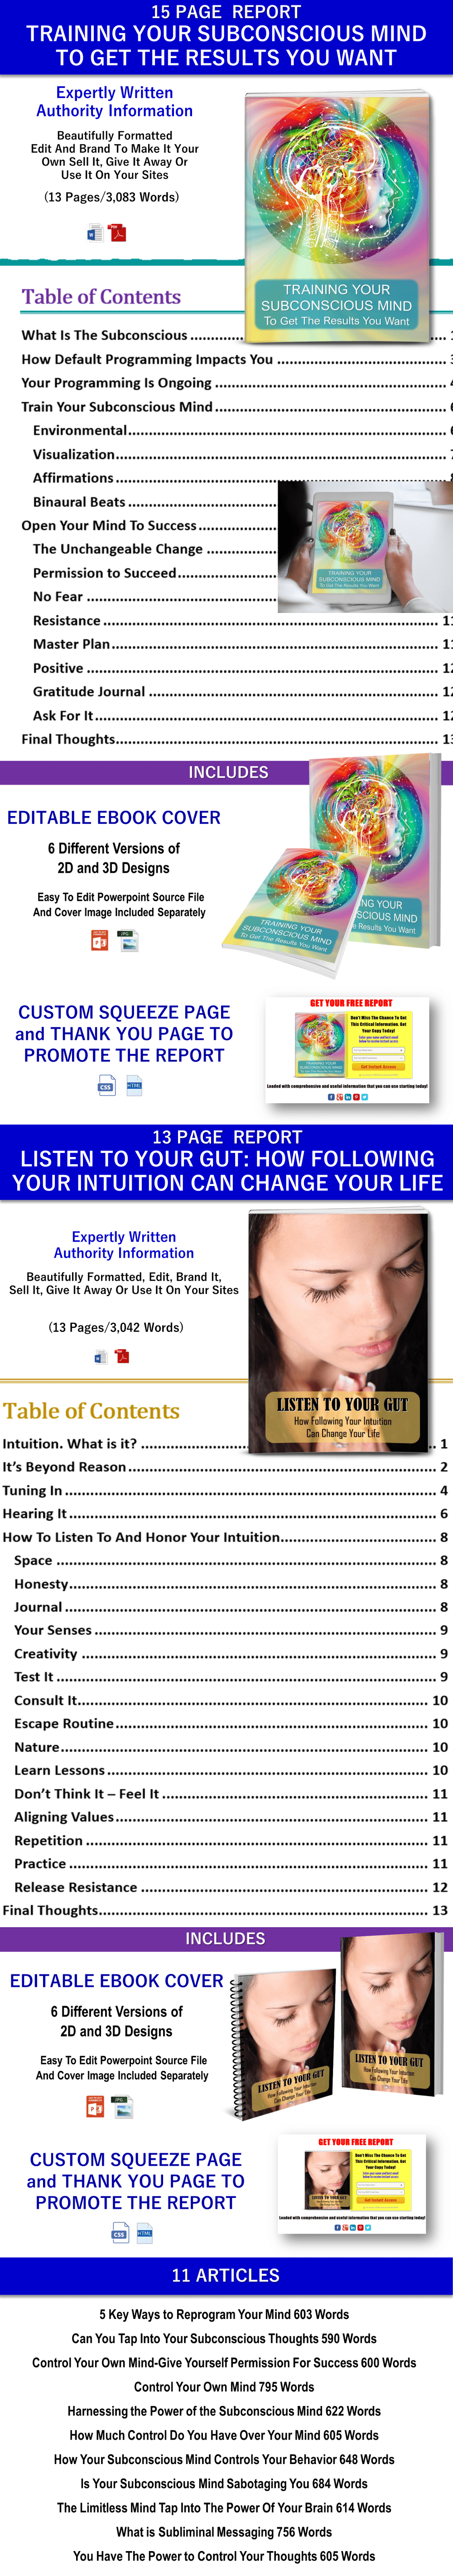 Training Your Subconscious Mind and Listen To Your Gut Personal Development PLR